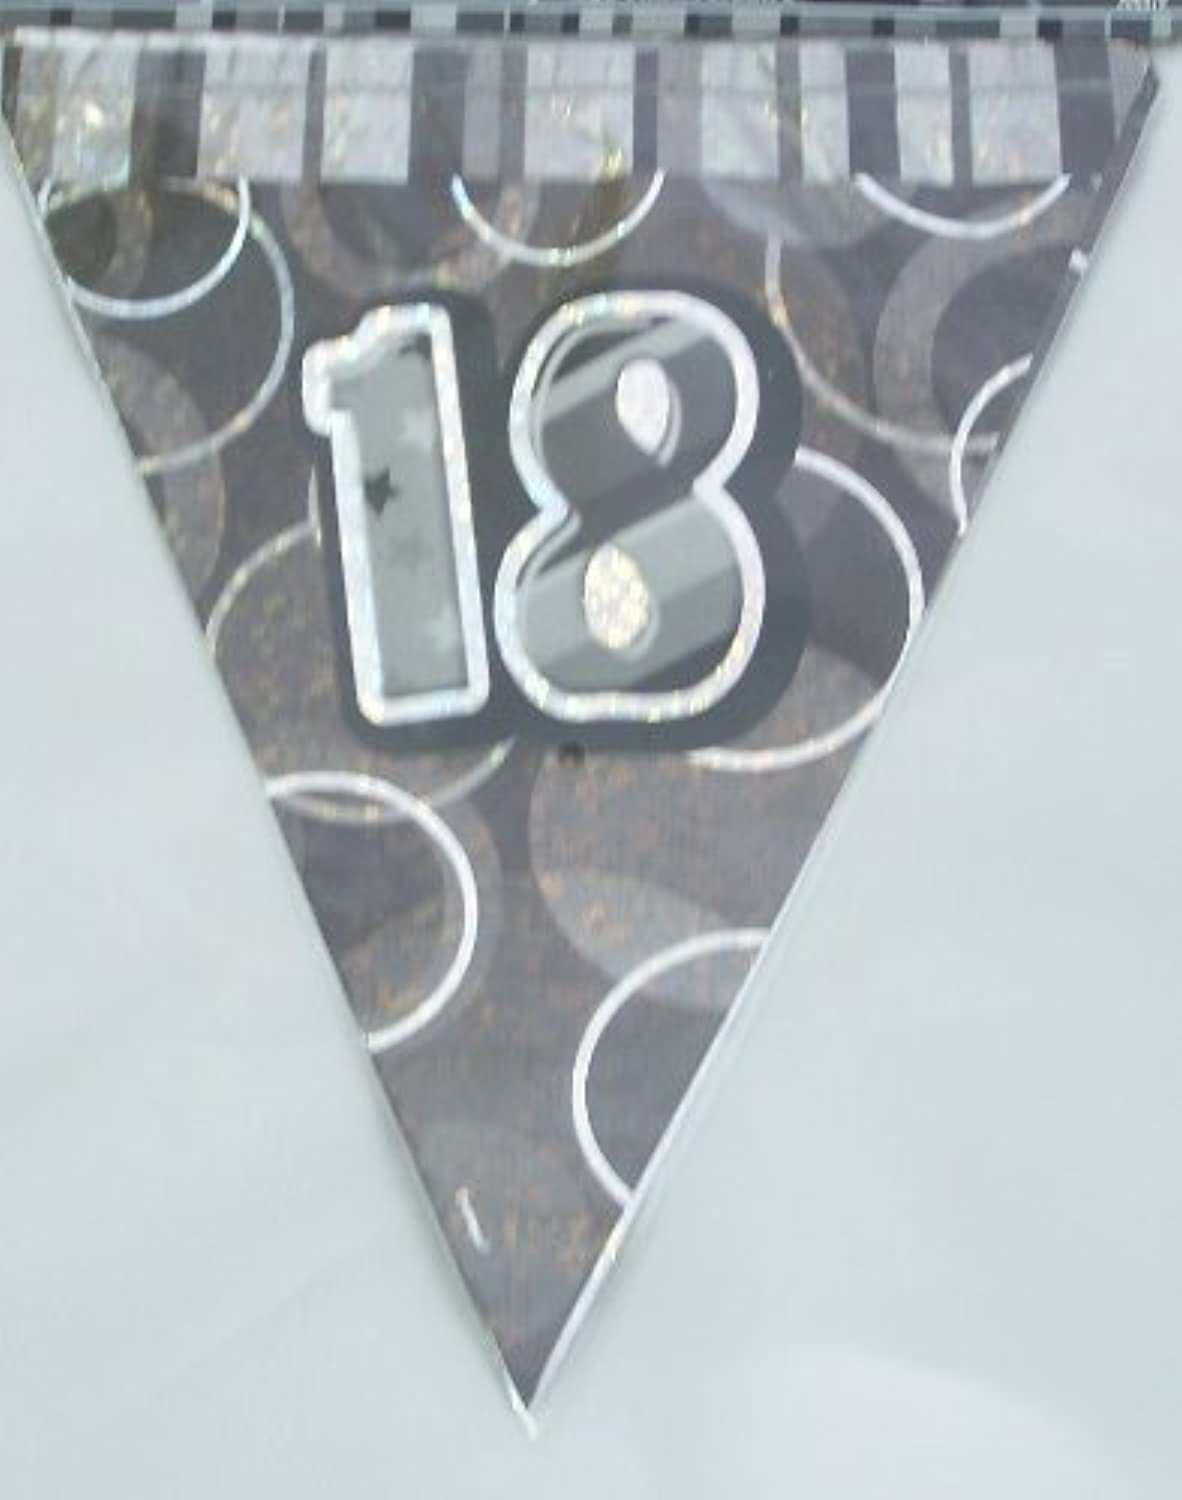 18TH BIRTHDAY BUNTING (NEW UNIQUE BLACK hol) 12FT LONG by Every-occasion-party-supplies